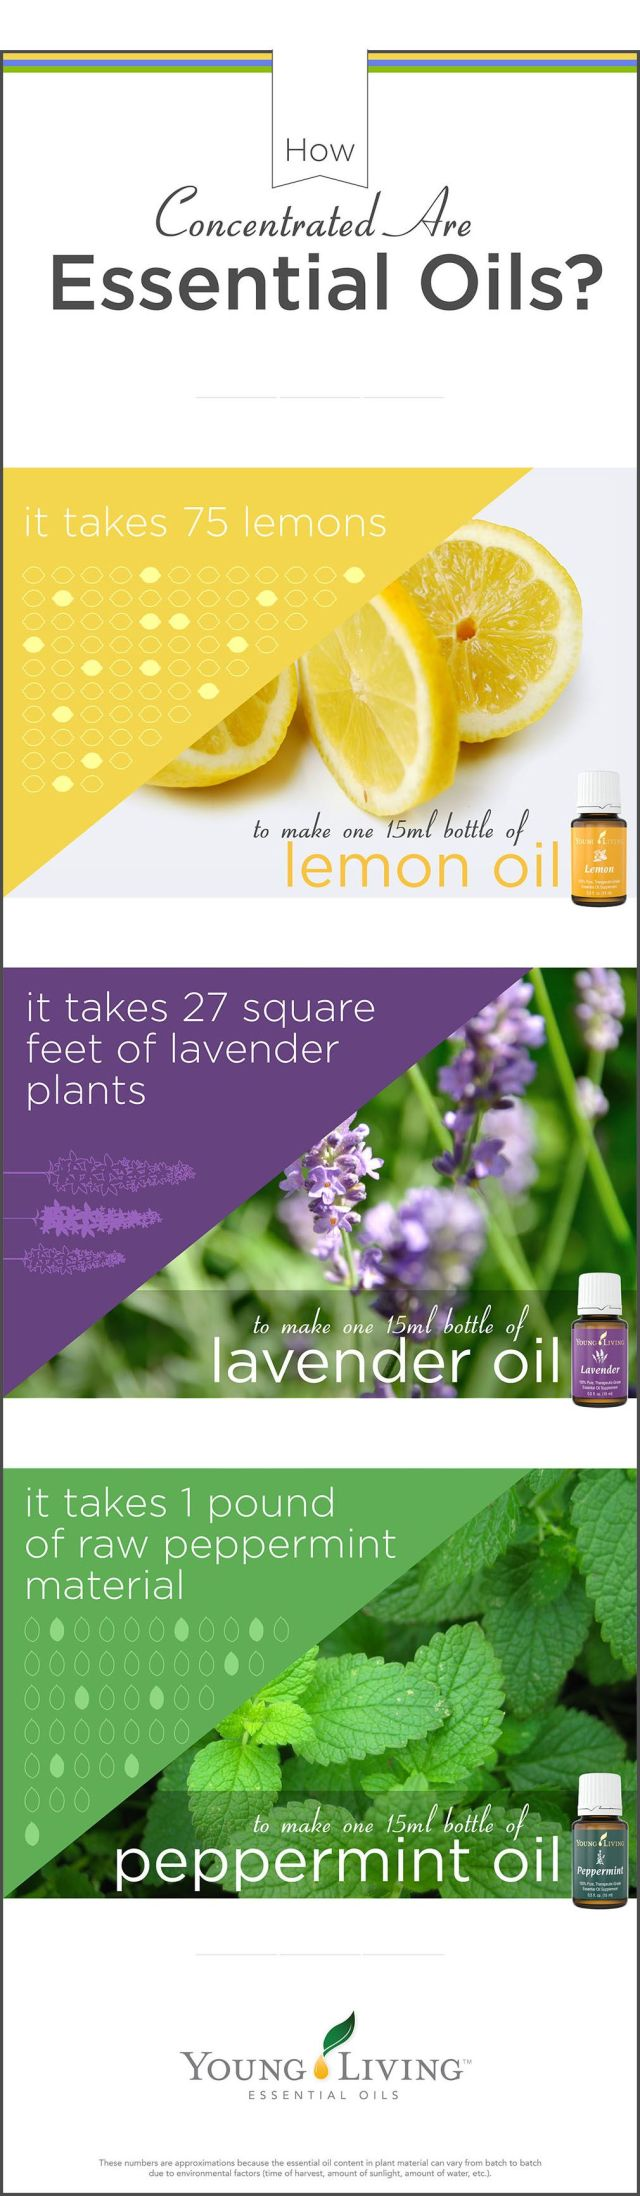 How concentrated are Young Living Oils?